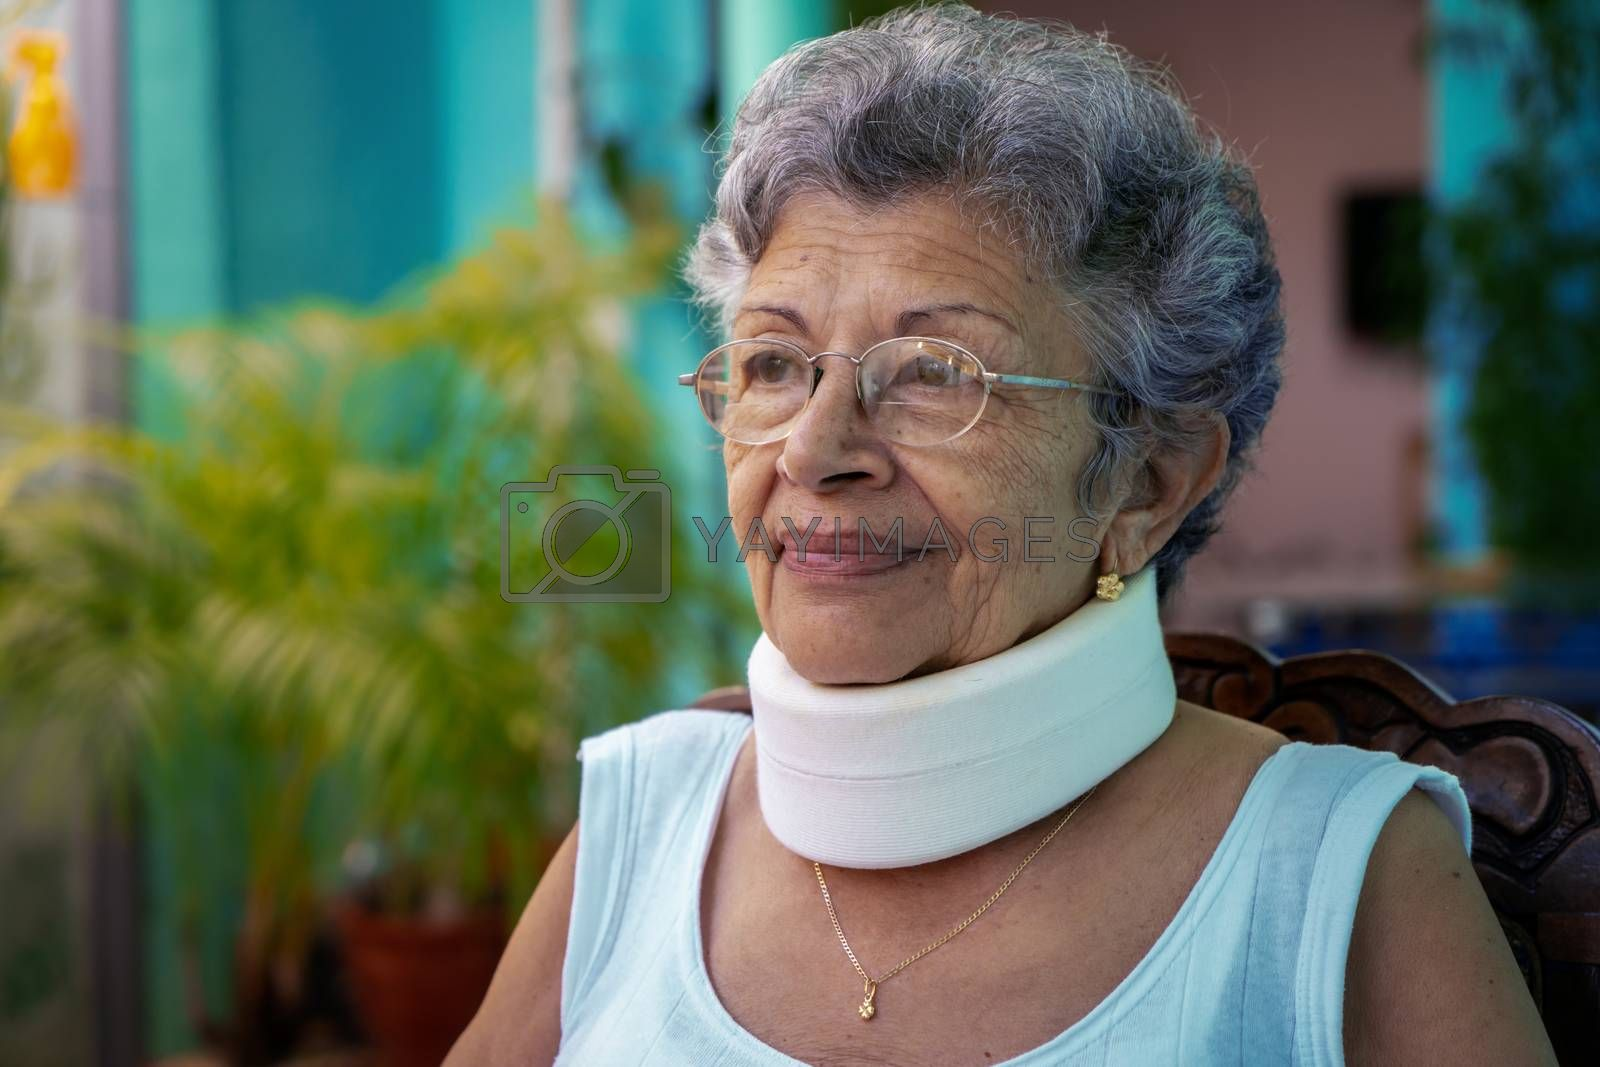 Elderly woman wearing homemade looking cervical immobilizer collar